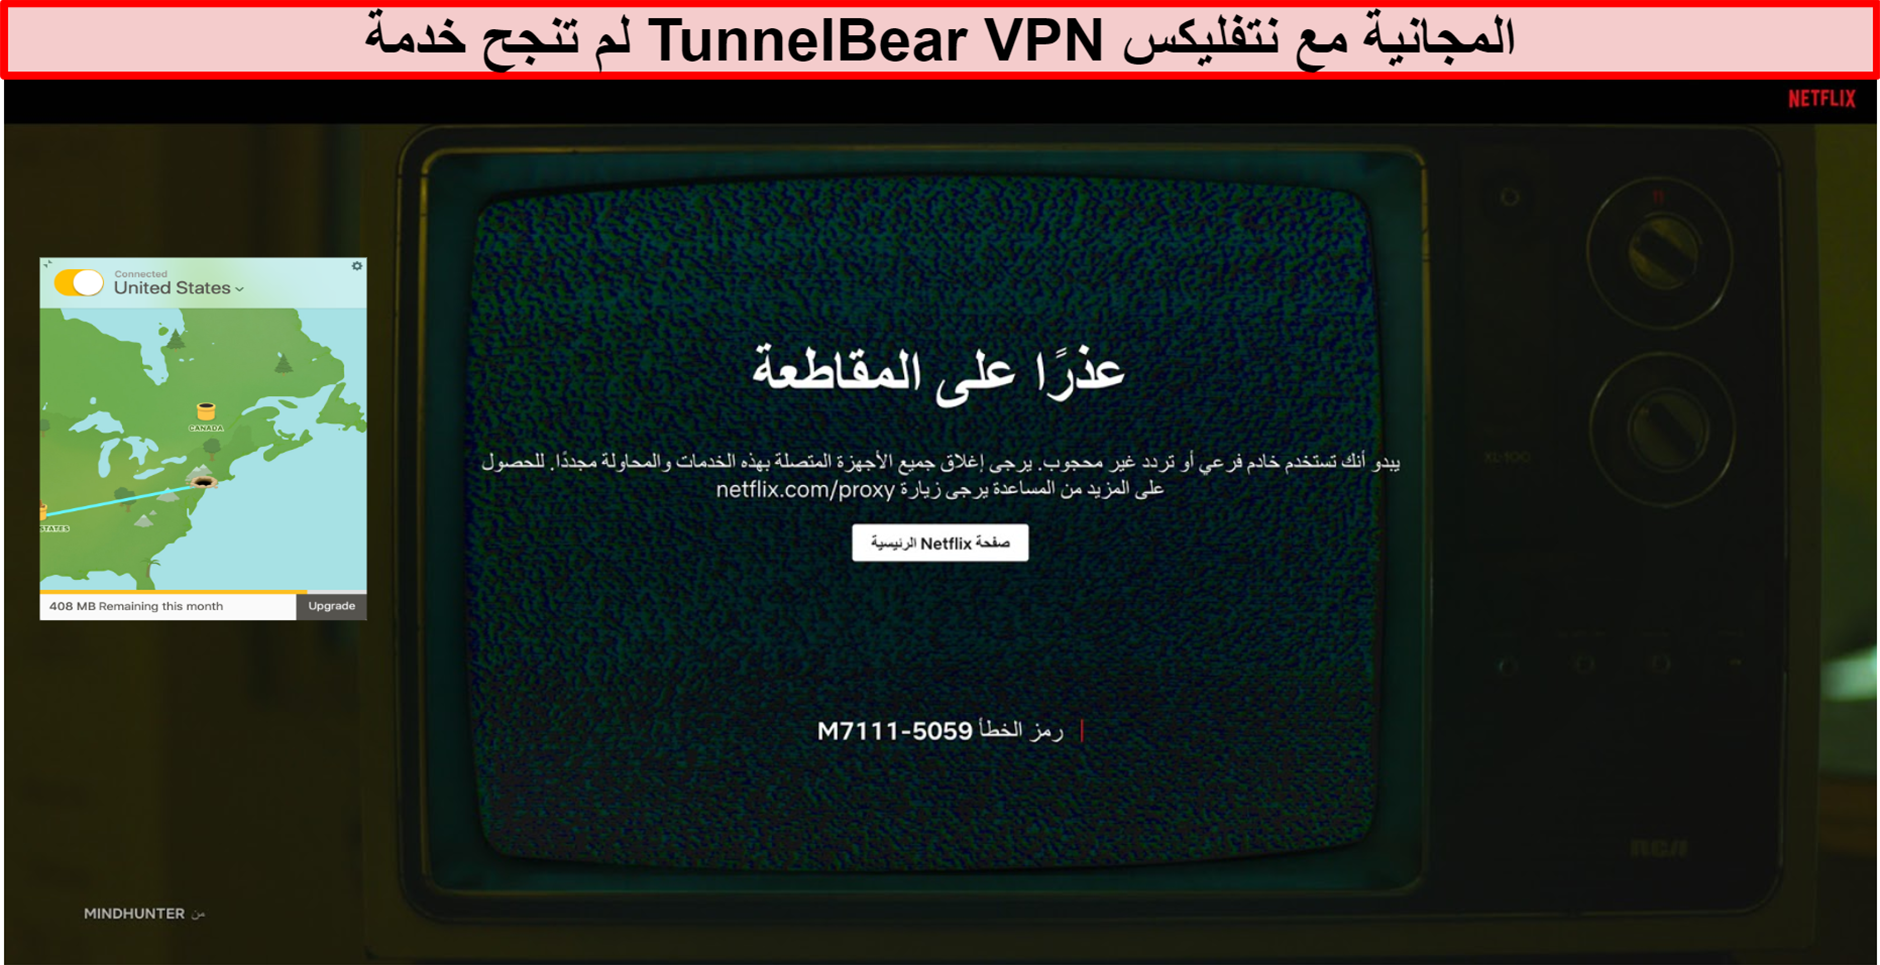 Screenshot of TunnelBear VPN connected to the US with Netflix showing the unblocker or proxy error message